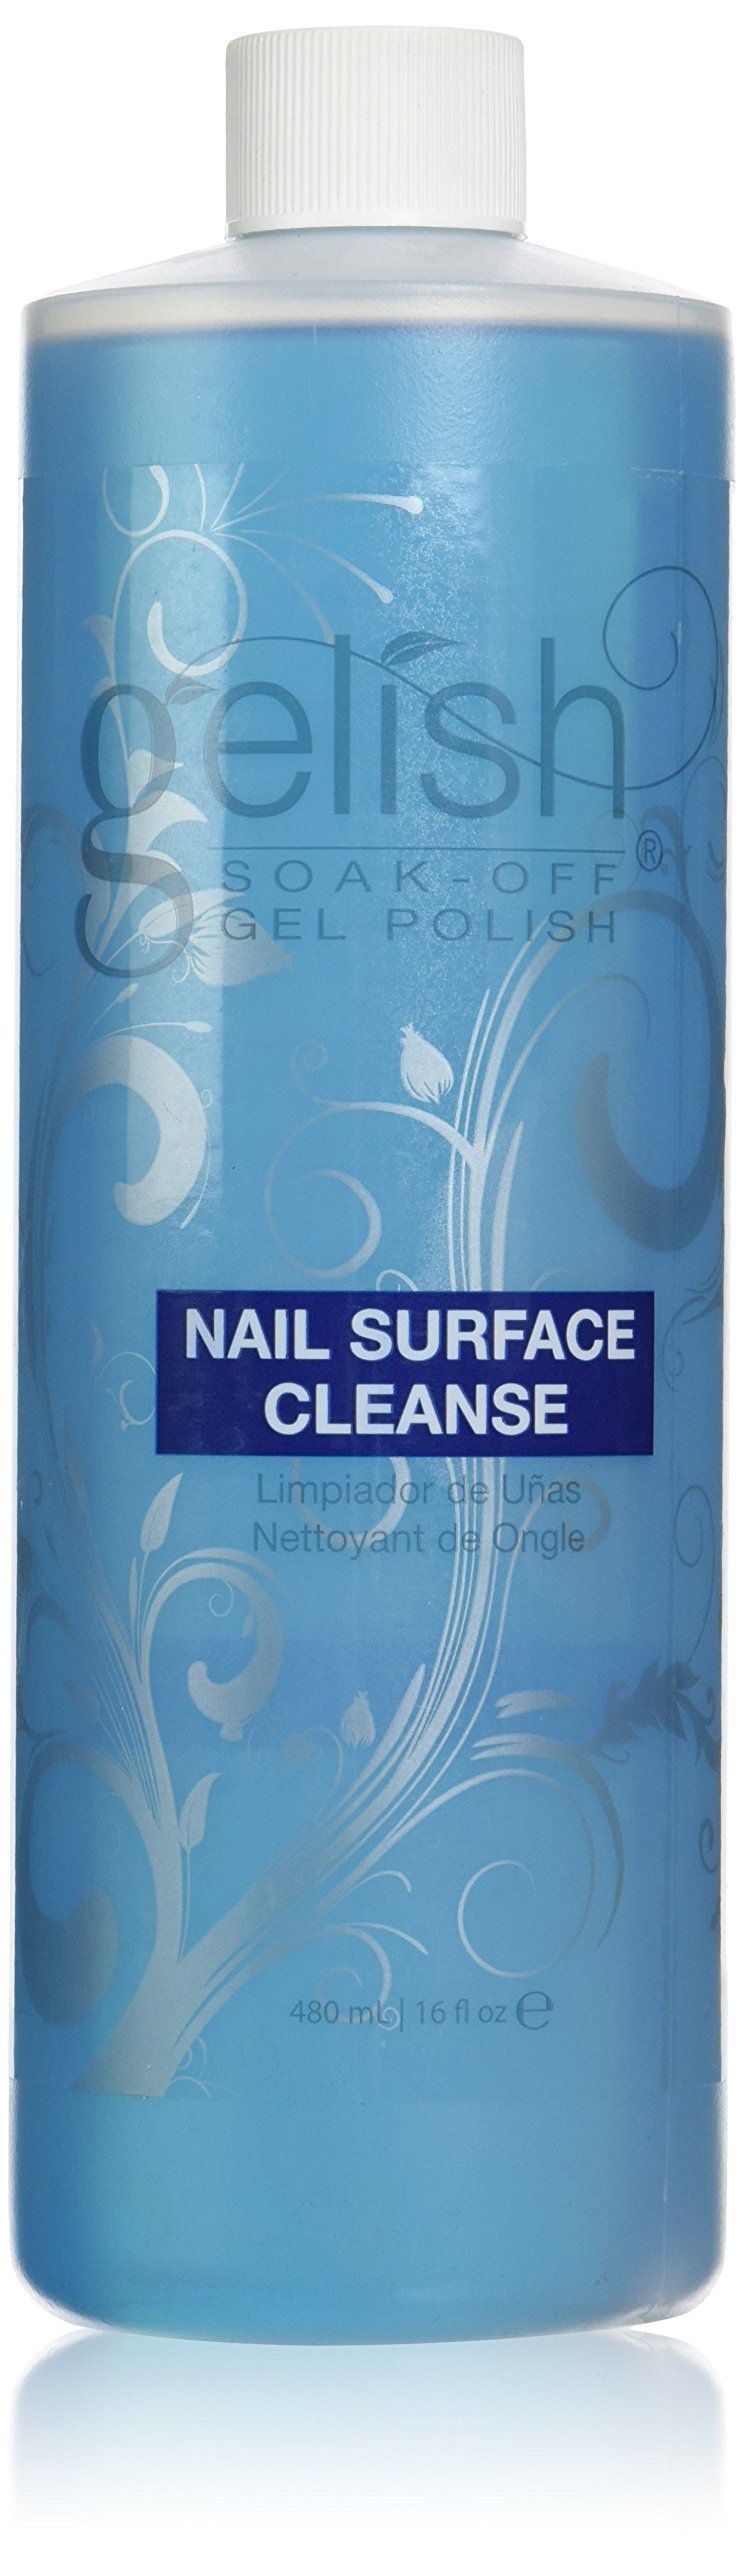 Gelish Nail Surface Cleanser, 16 Ounce